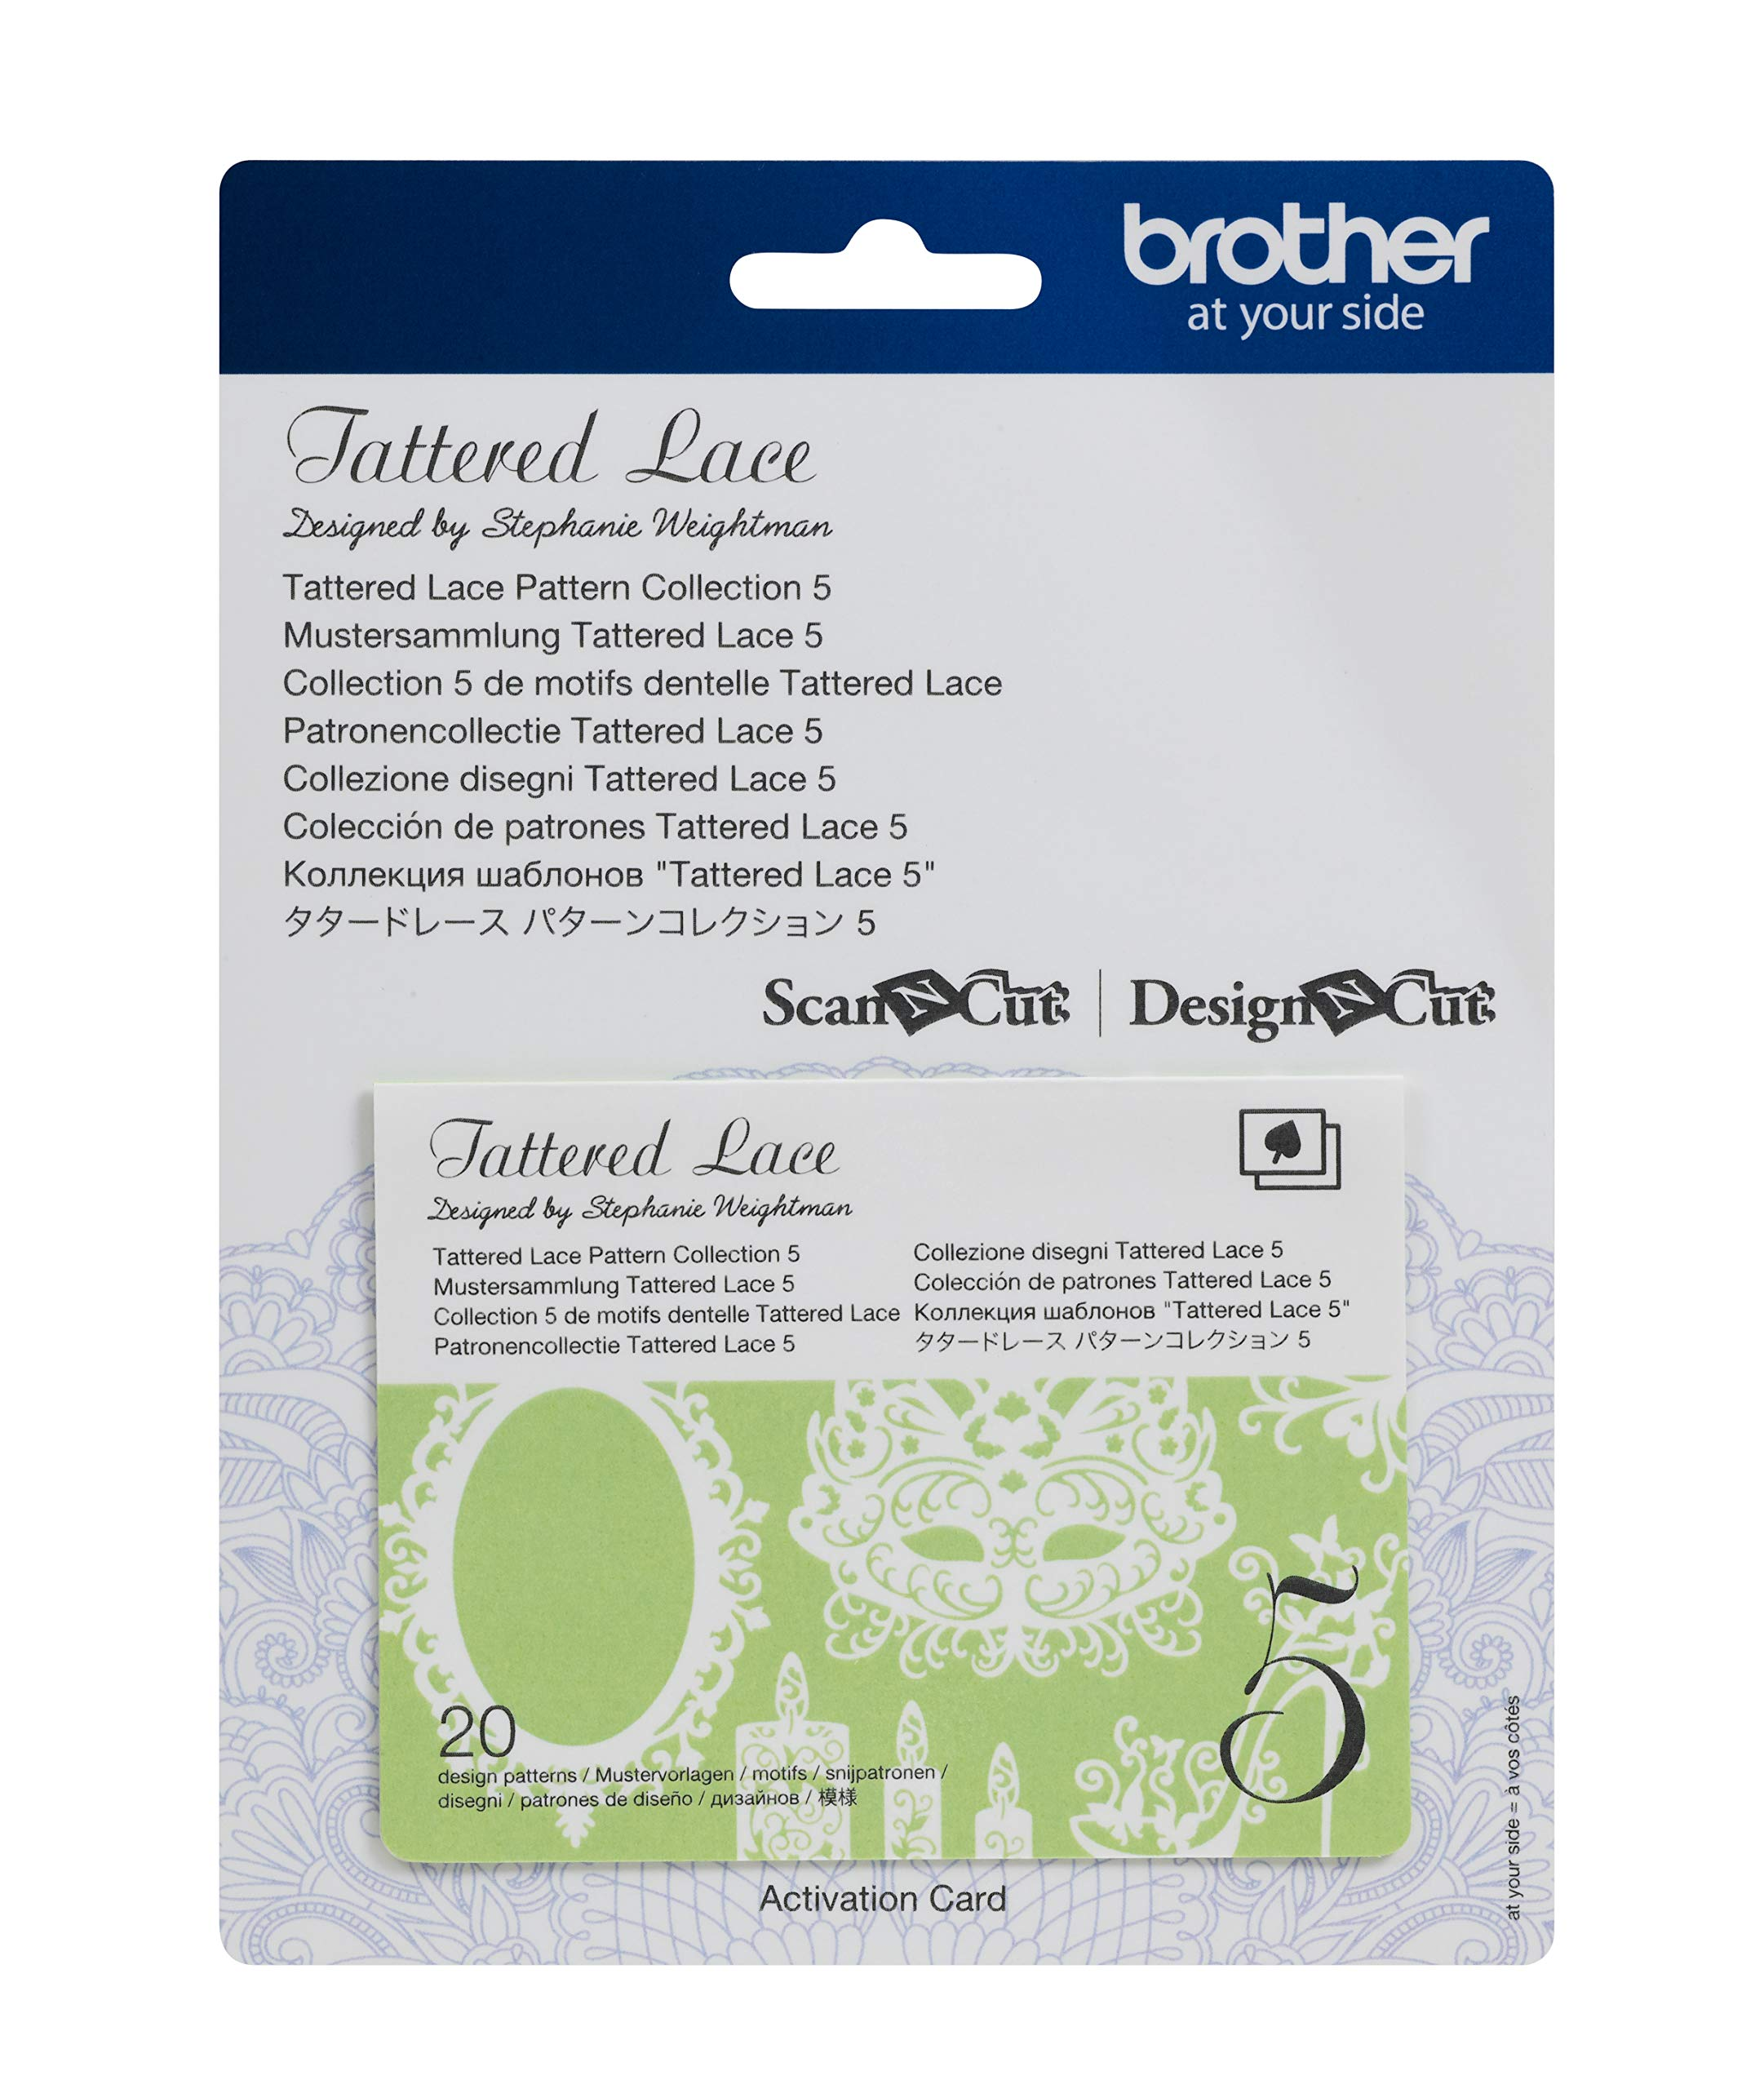 Brother CATTLP05 Tattered Lace Pattern Collection by Brother